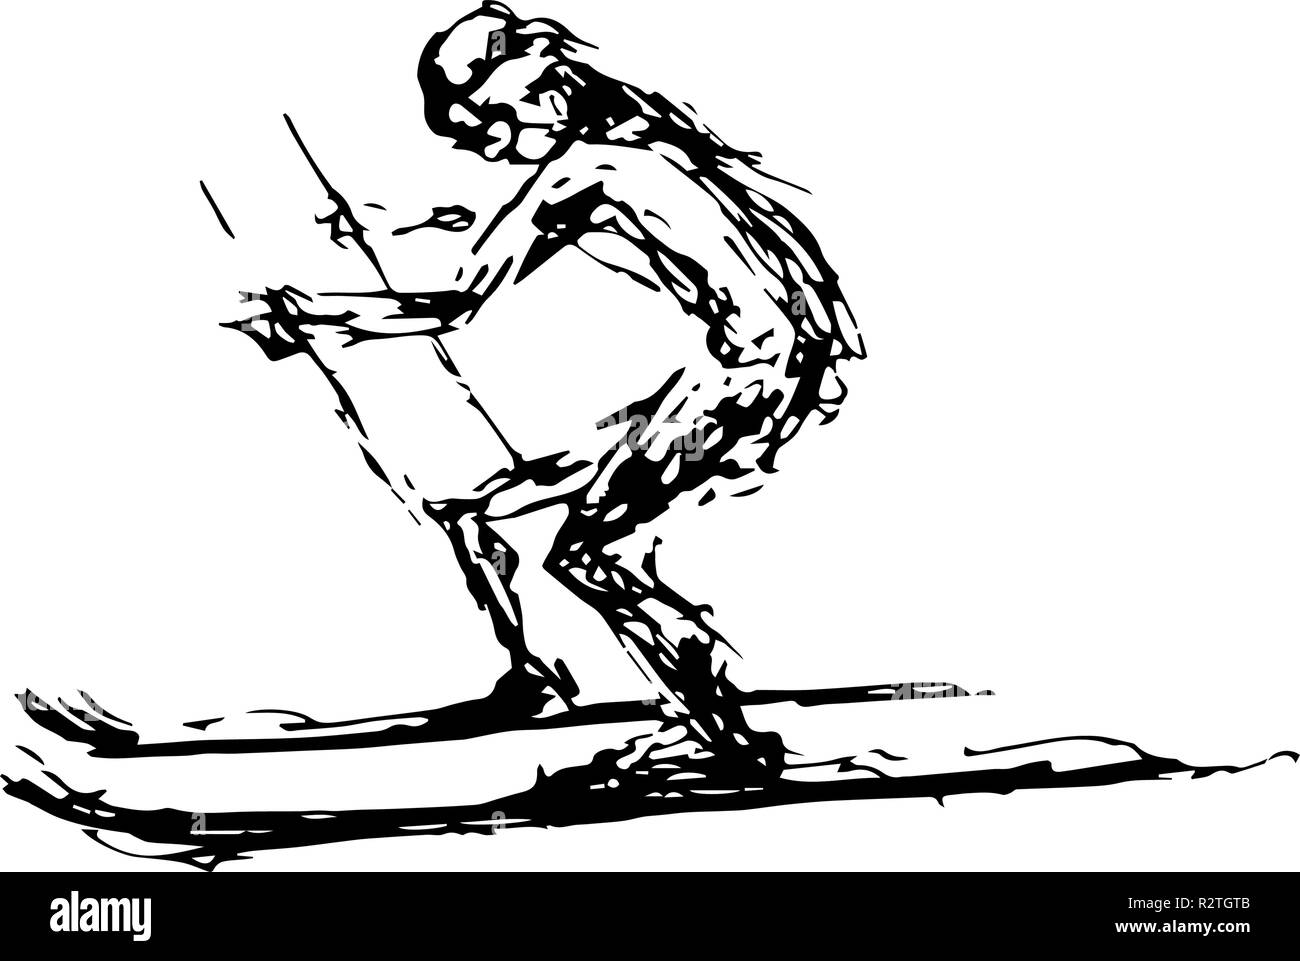 Black and white abstract vector drawing of a skiing man. - Stock Image